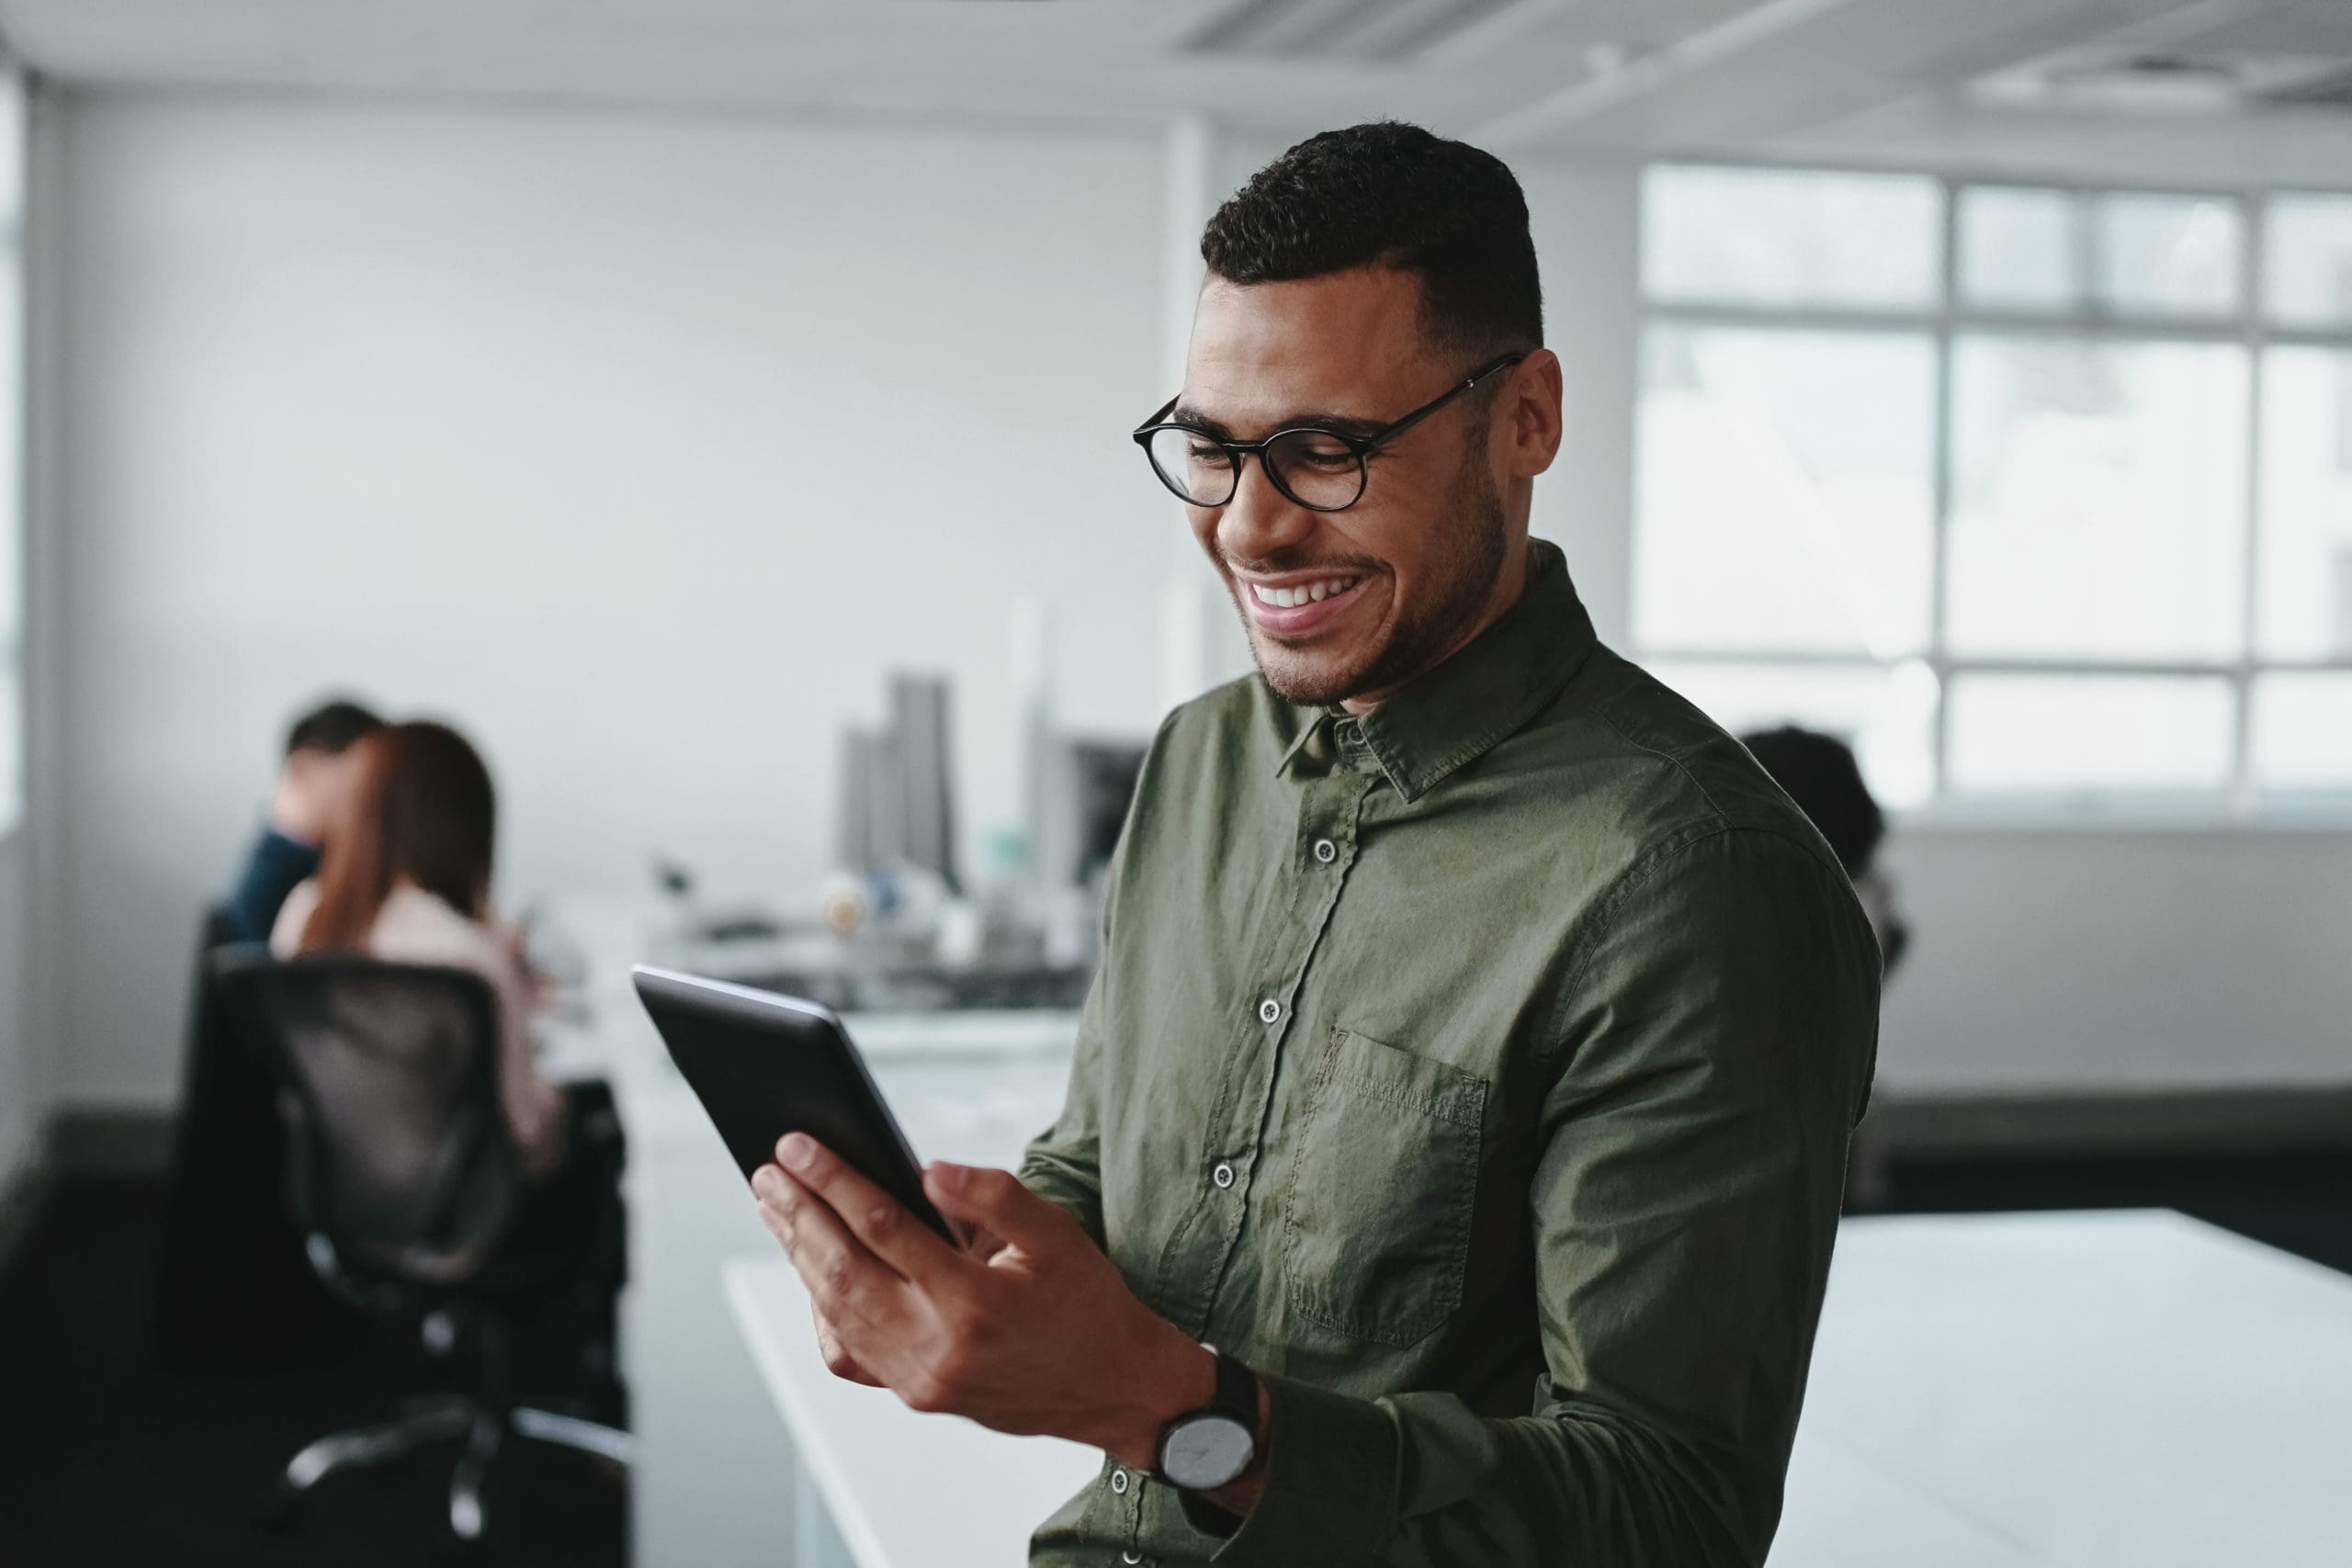 Smiling young businessman touching smartphone and checking online information in the modern office